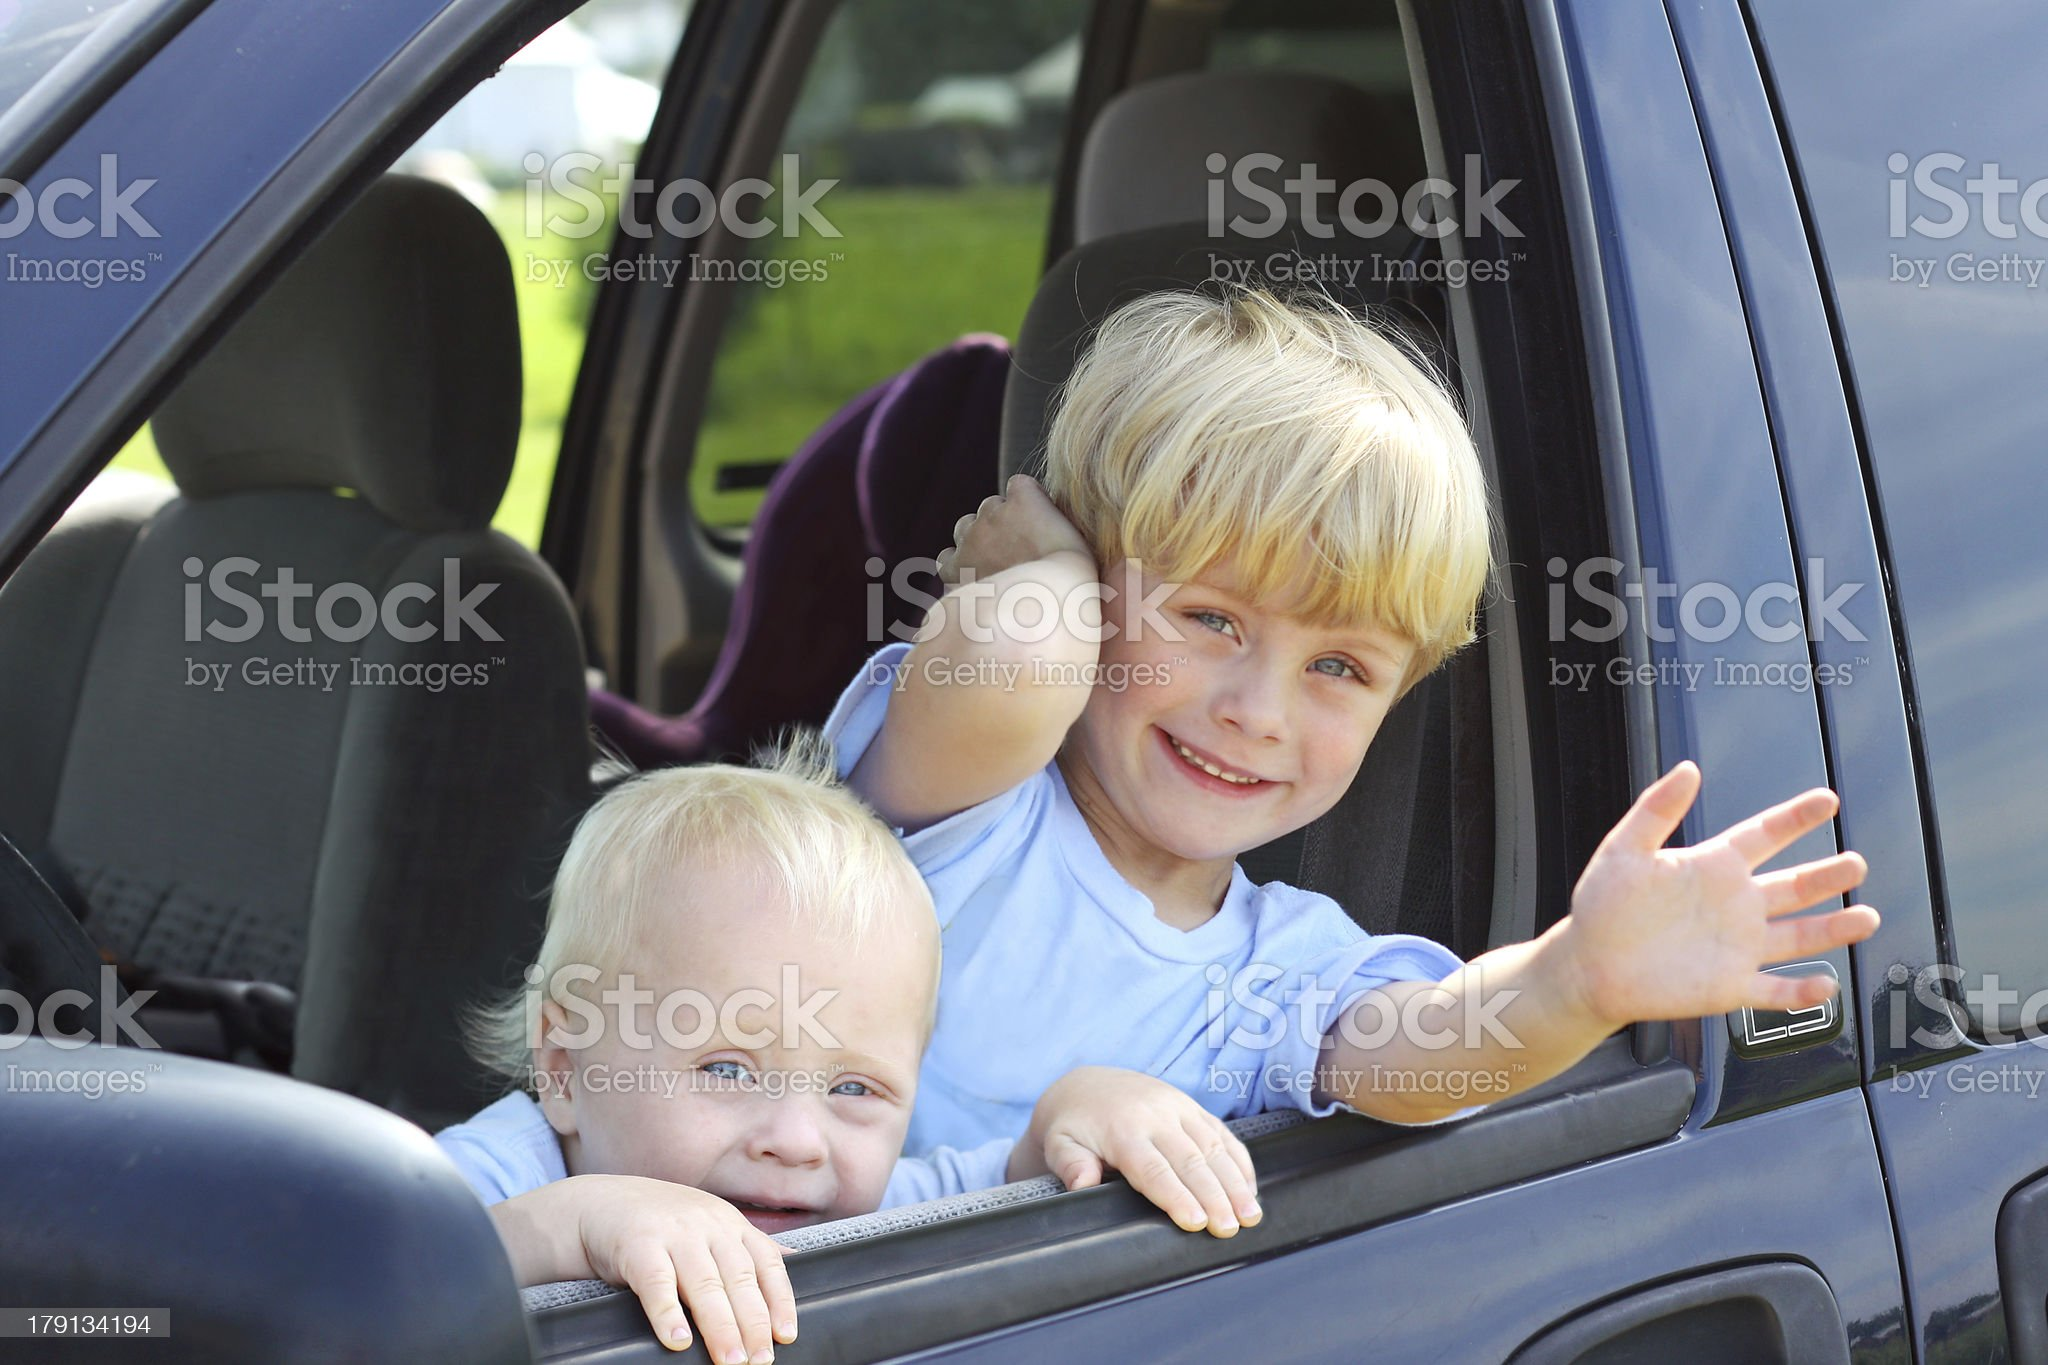 Children Smiling Out Van Window royalty-free stock photo